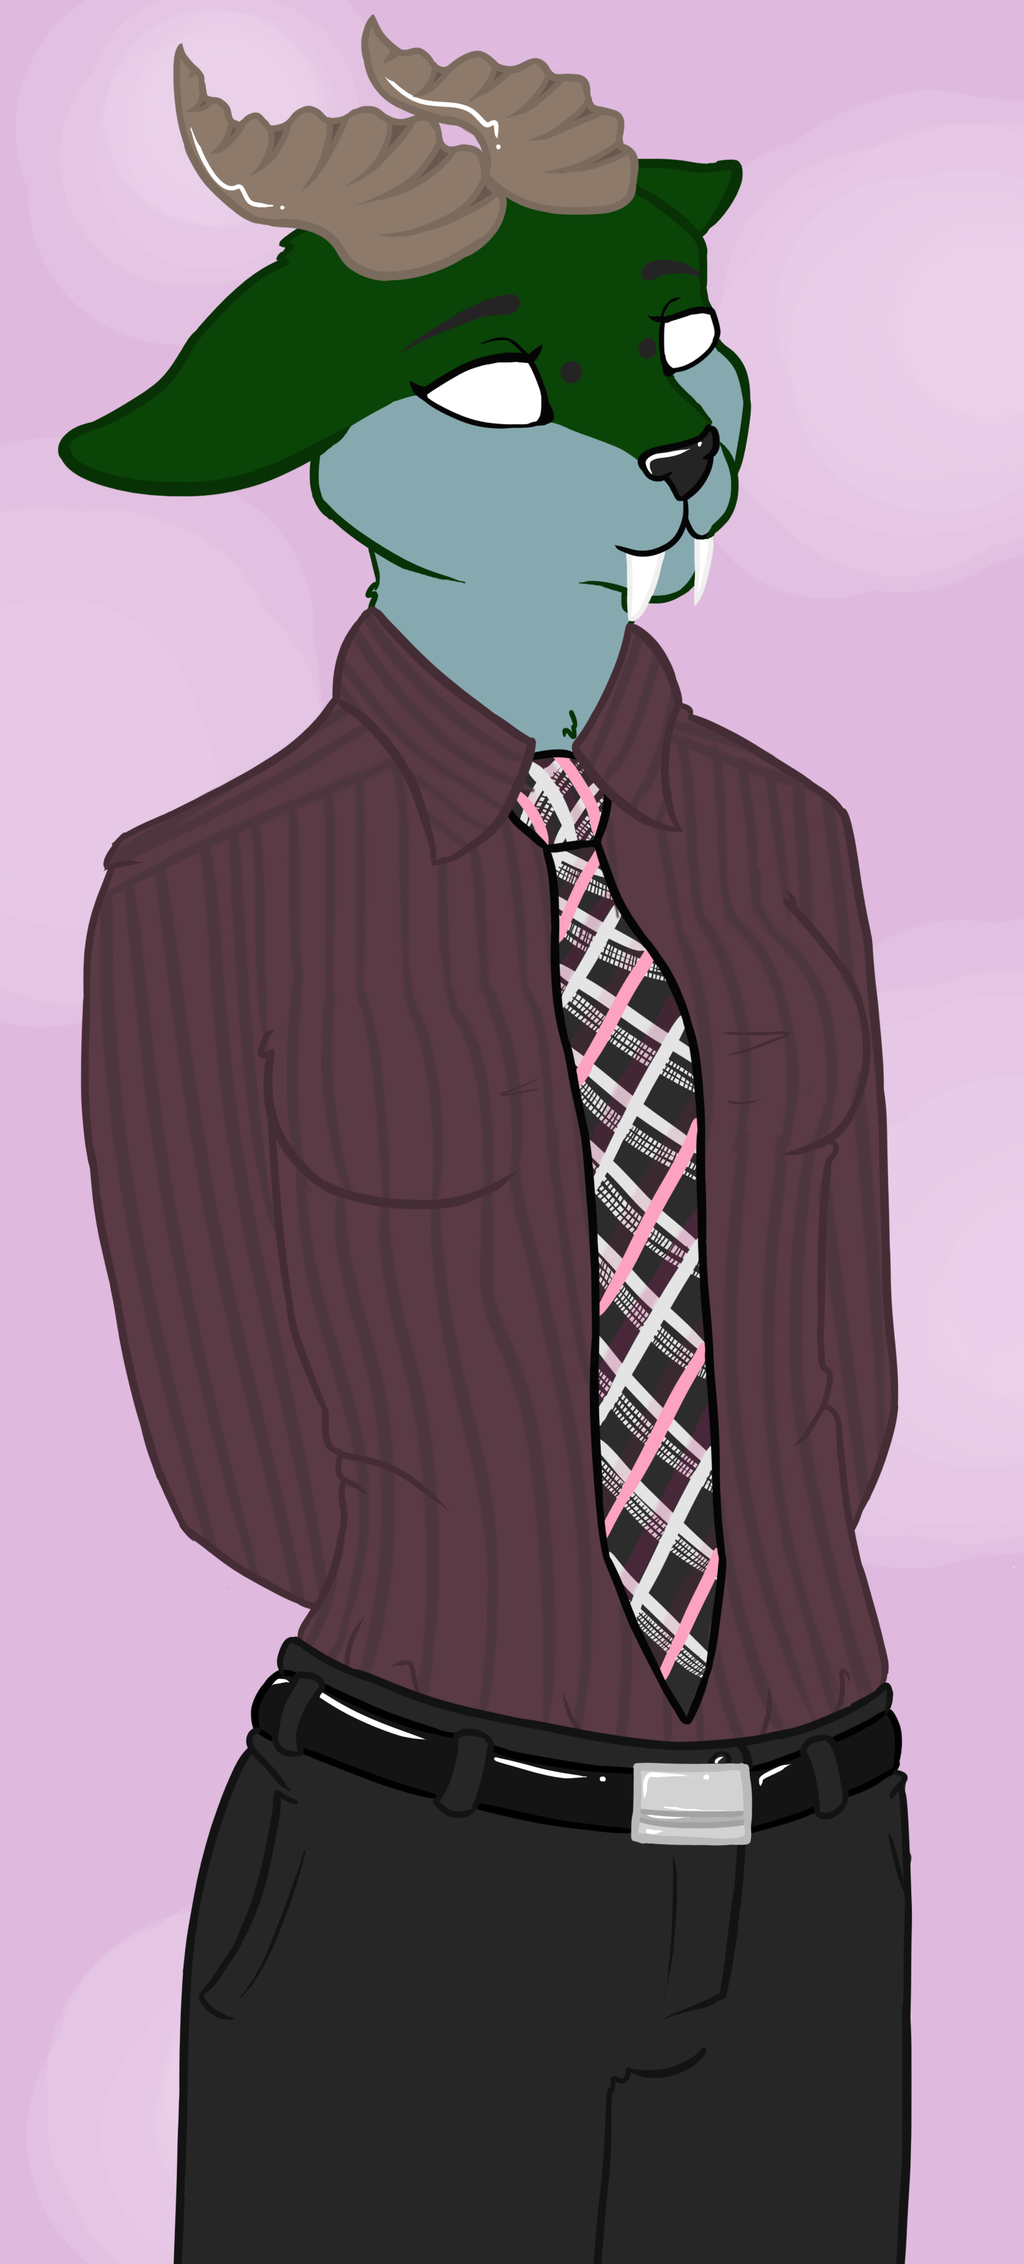 Featured image: Formal outfit